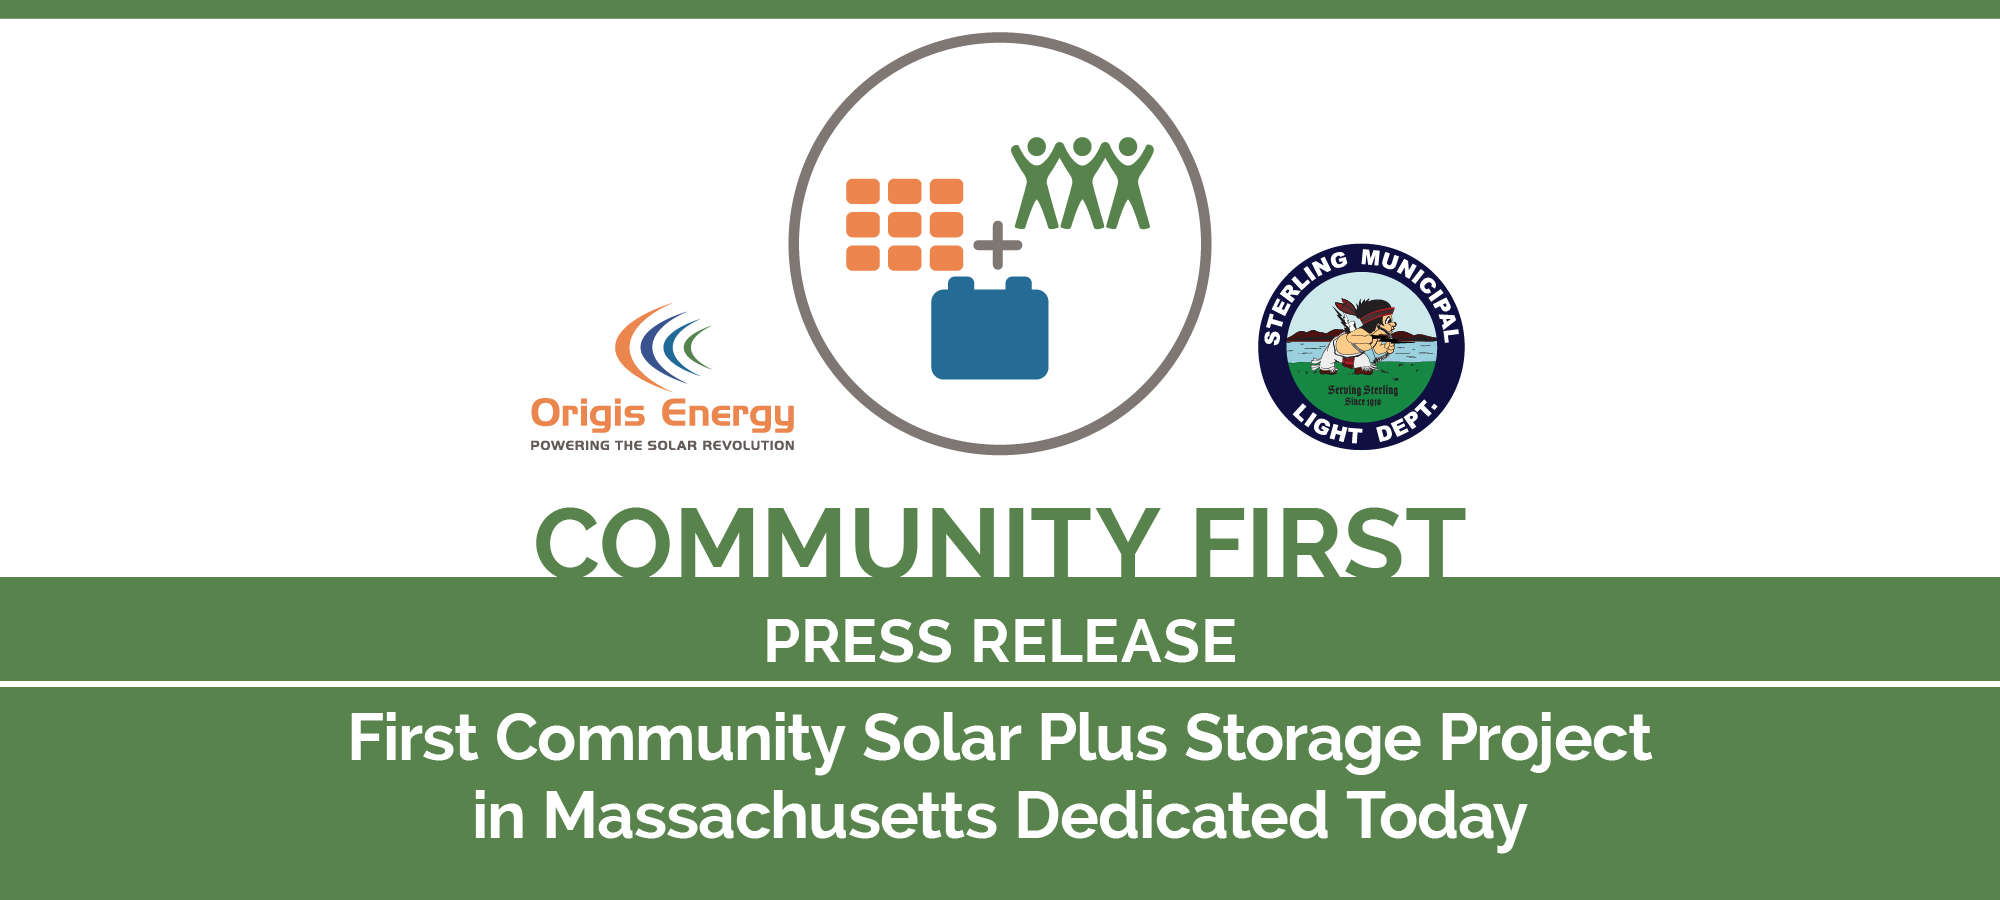 First Community Solar Plus Storage Project in Massachusetts Dedicated Today